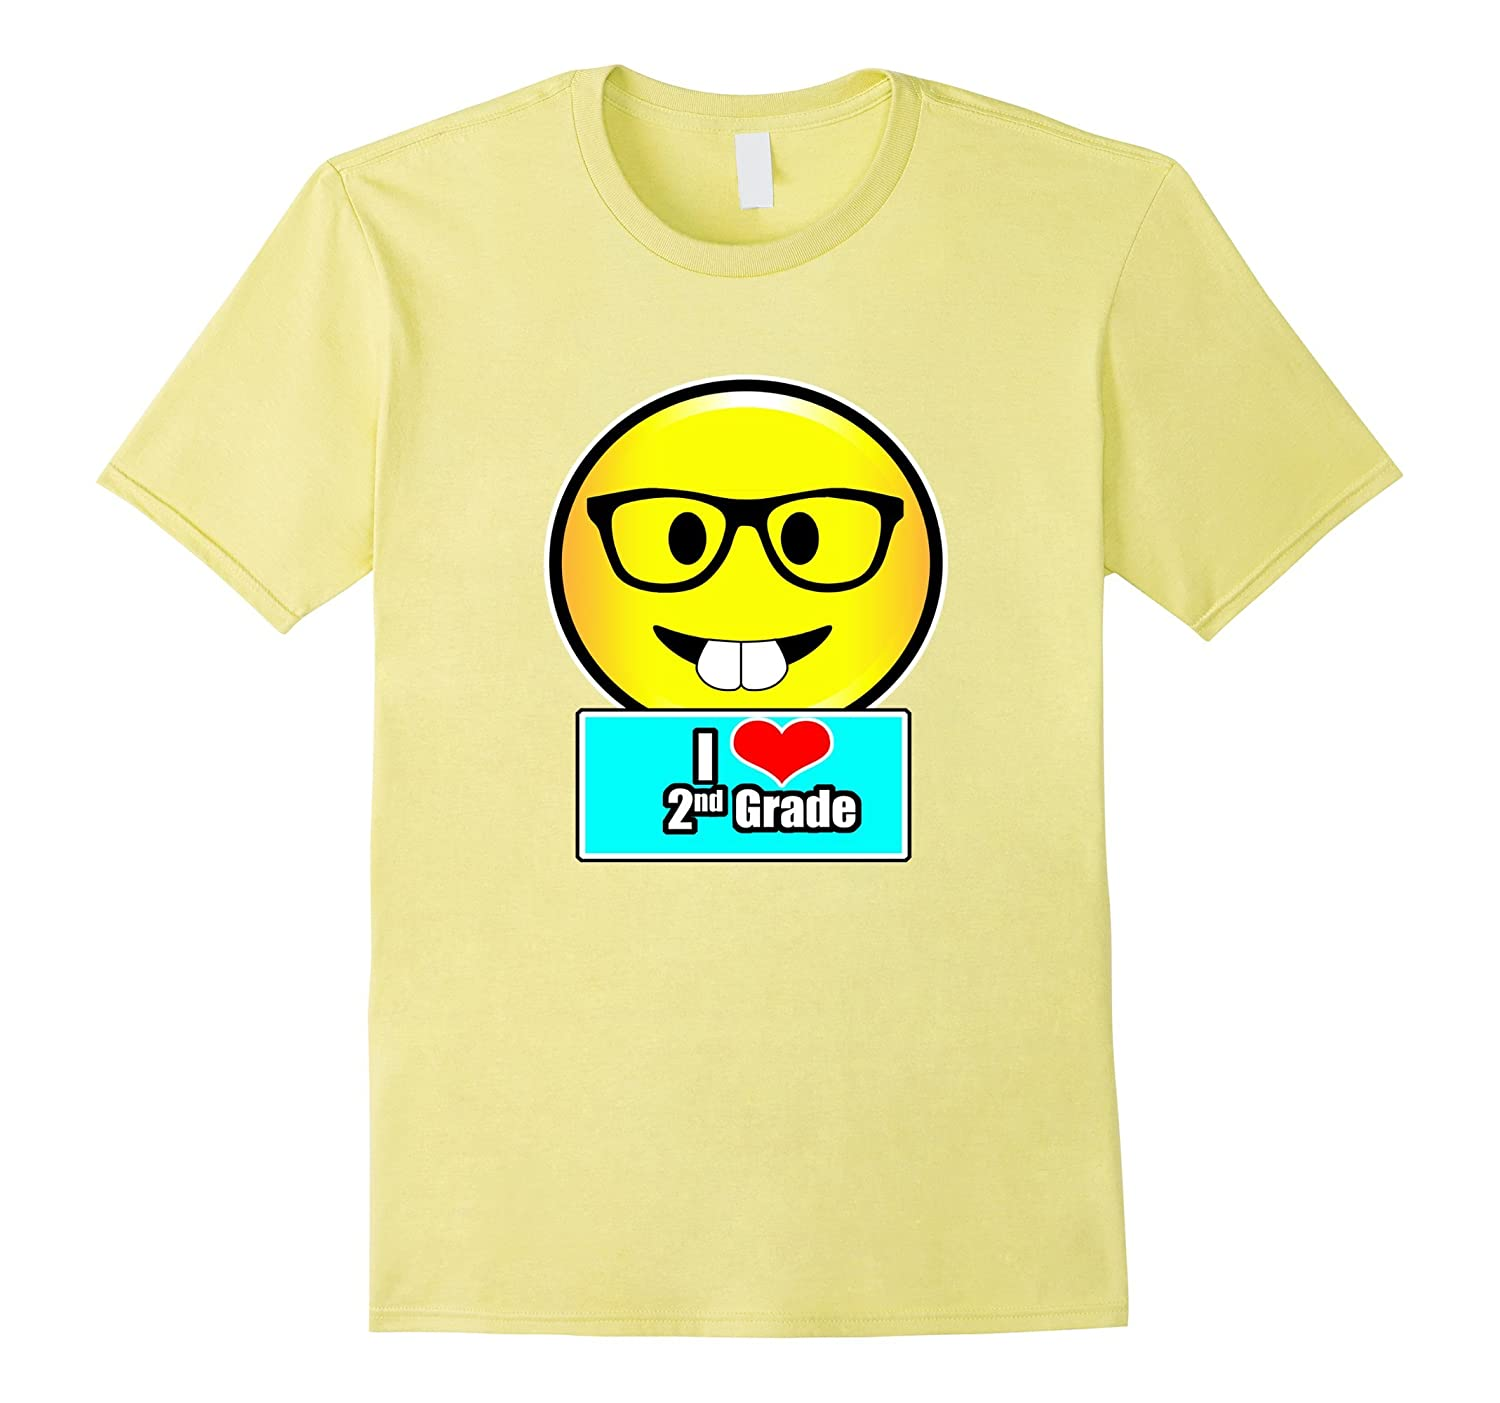 c5210c213 I Love 2nd Grade Emoji Kids or Teacher In Second Grade Shirt-PL ...